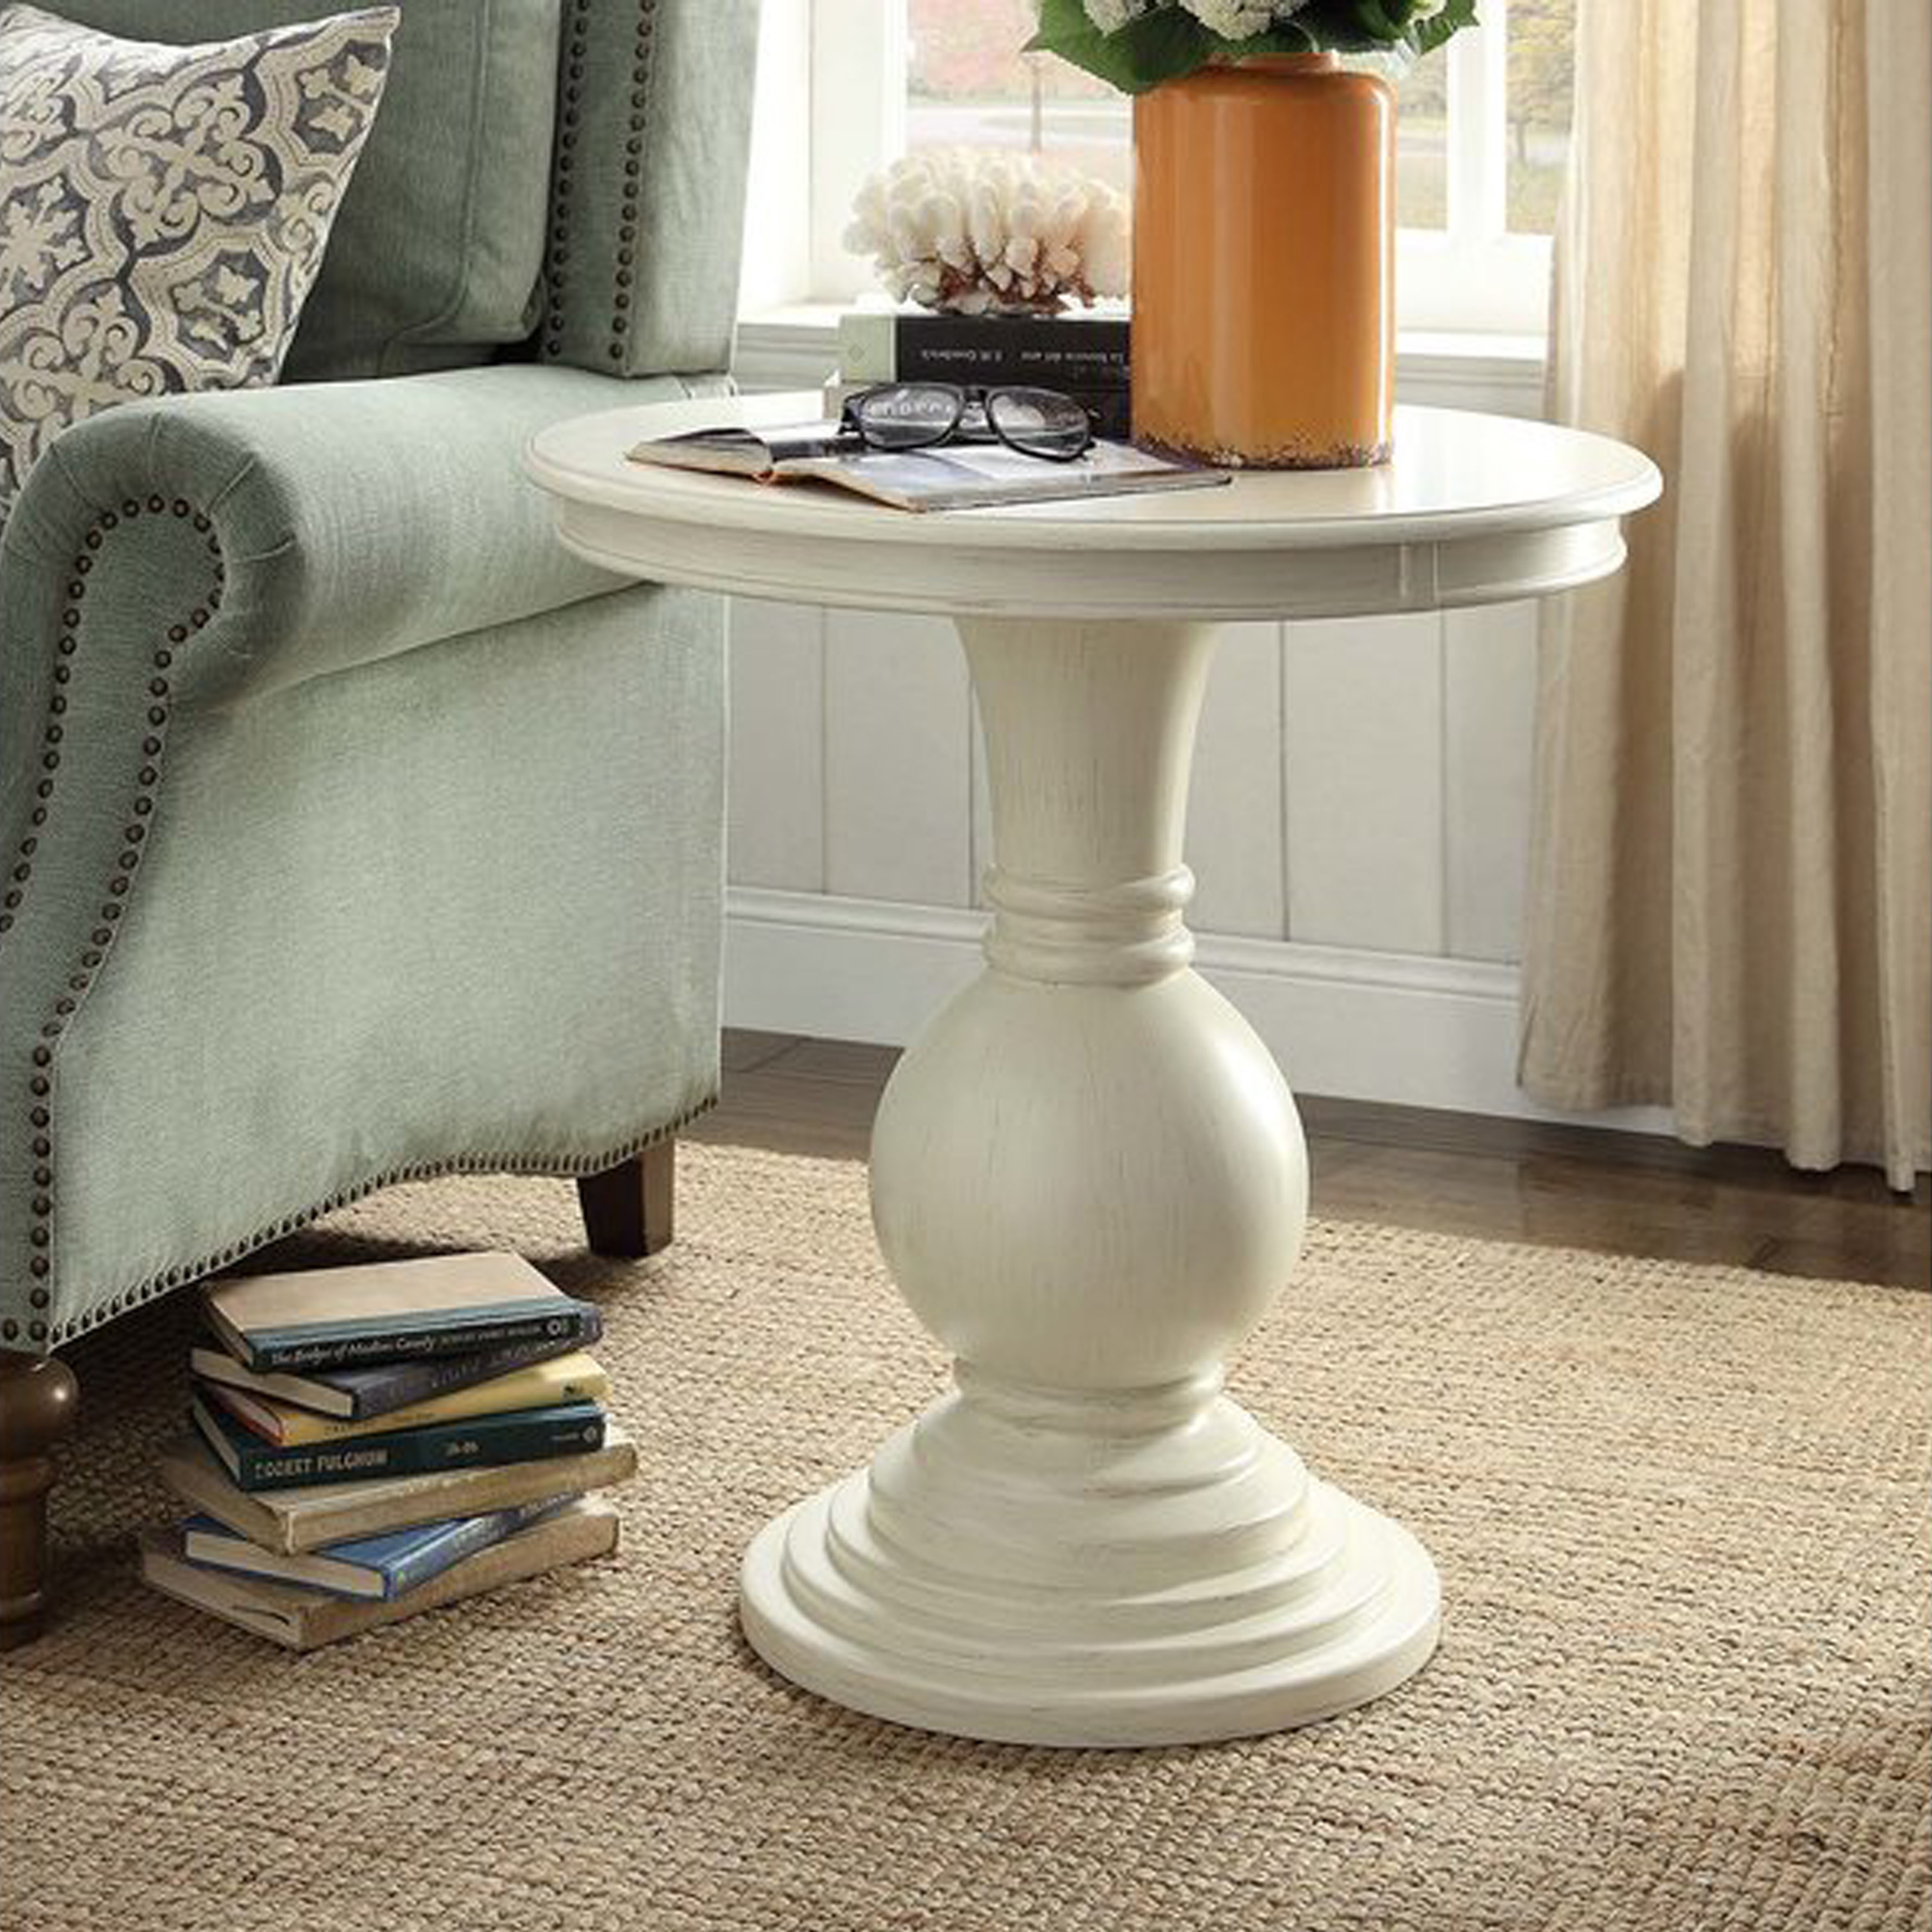 tall pedestal accent table design ideas round end tables side lamp for wrought iron small black distressed off white best accentuate your living narrow console hallway door